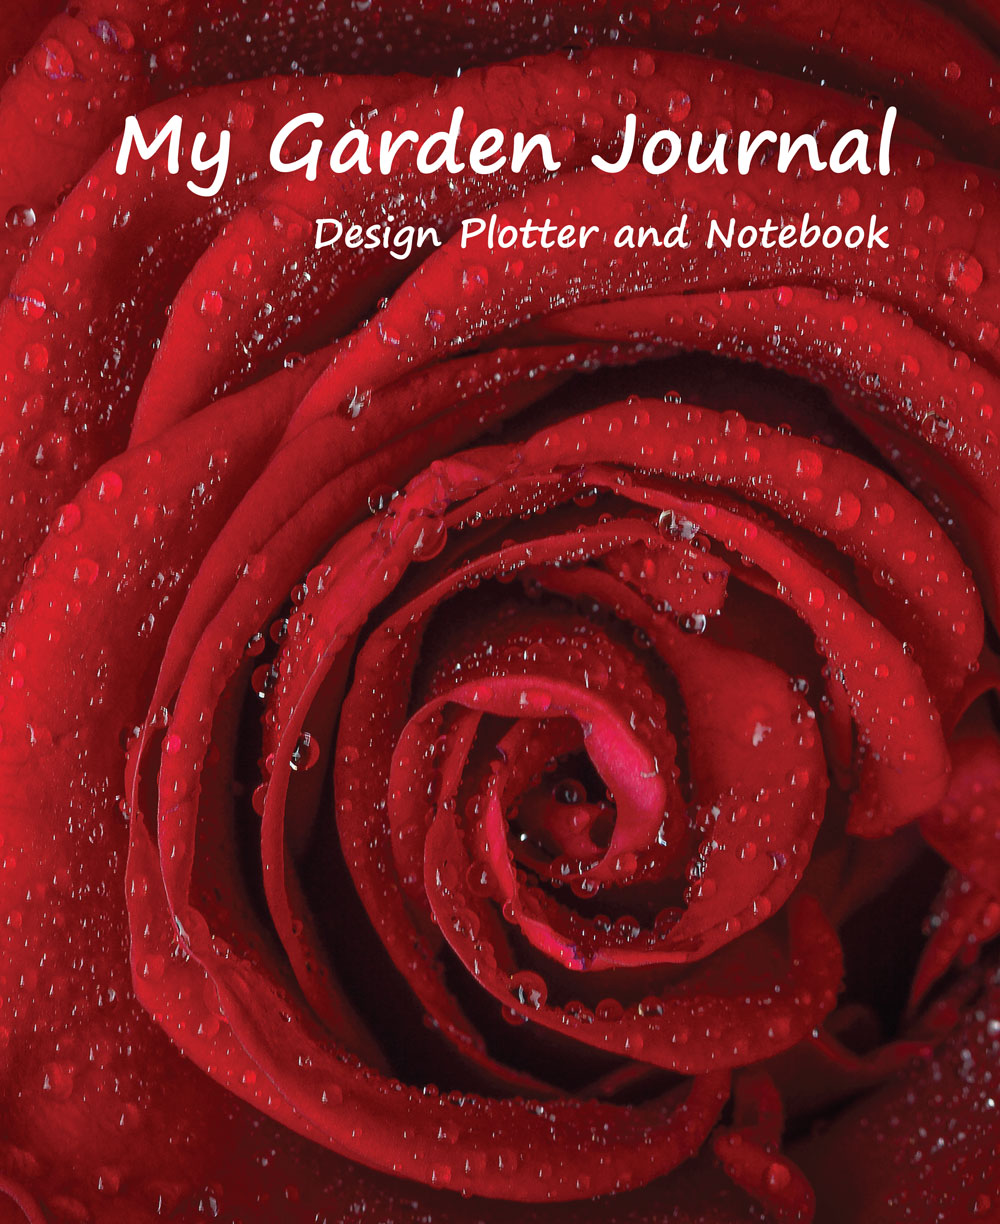 My Garden Journal: Design Plotter and Notebook